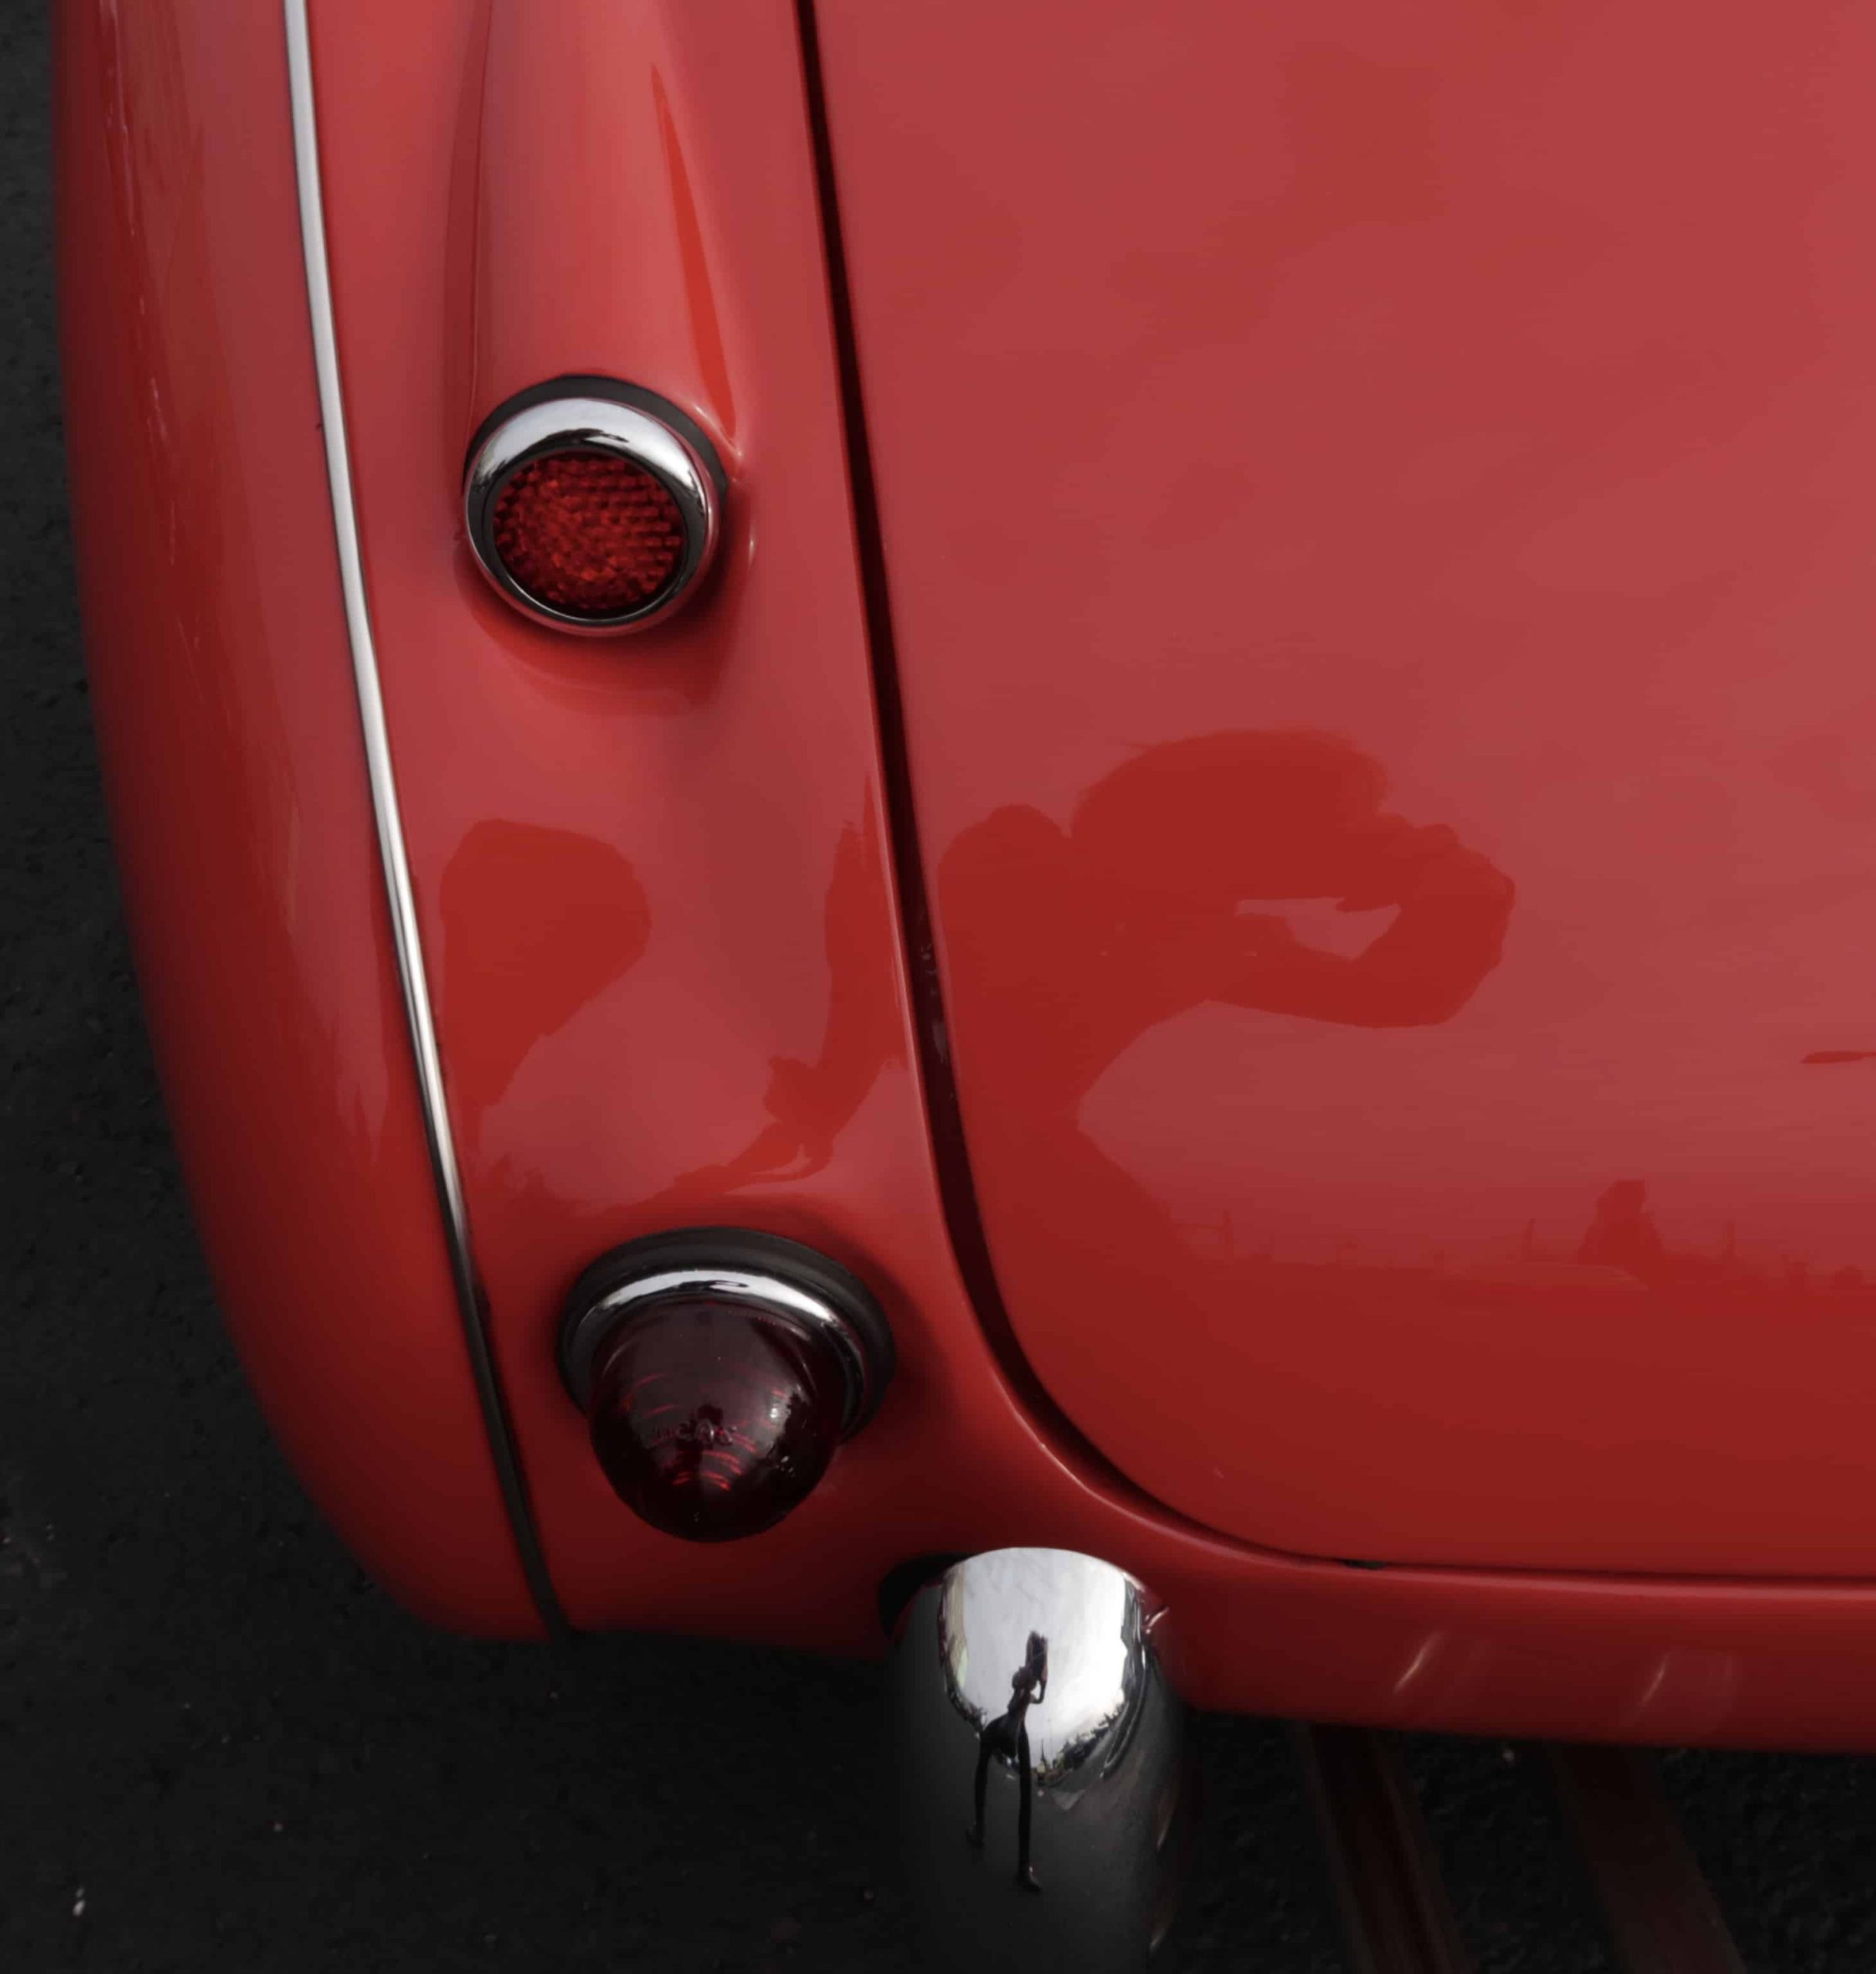 Guess What Ride 19: Which Sports Car?